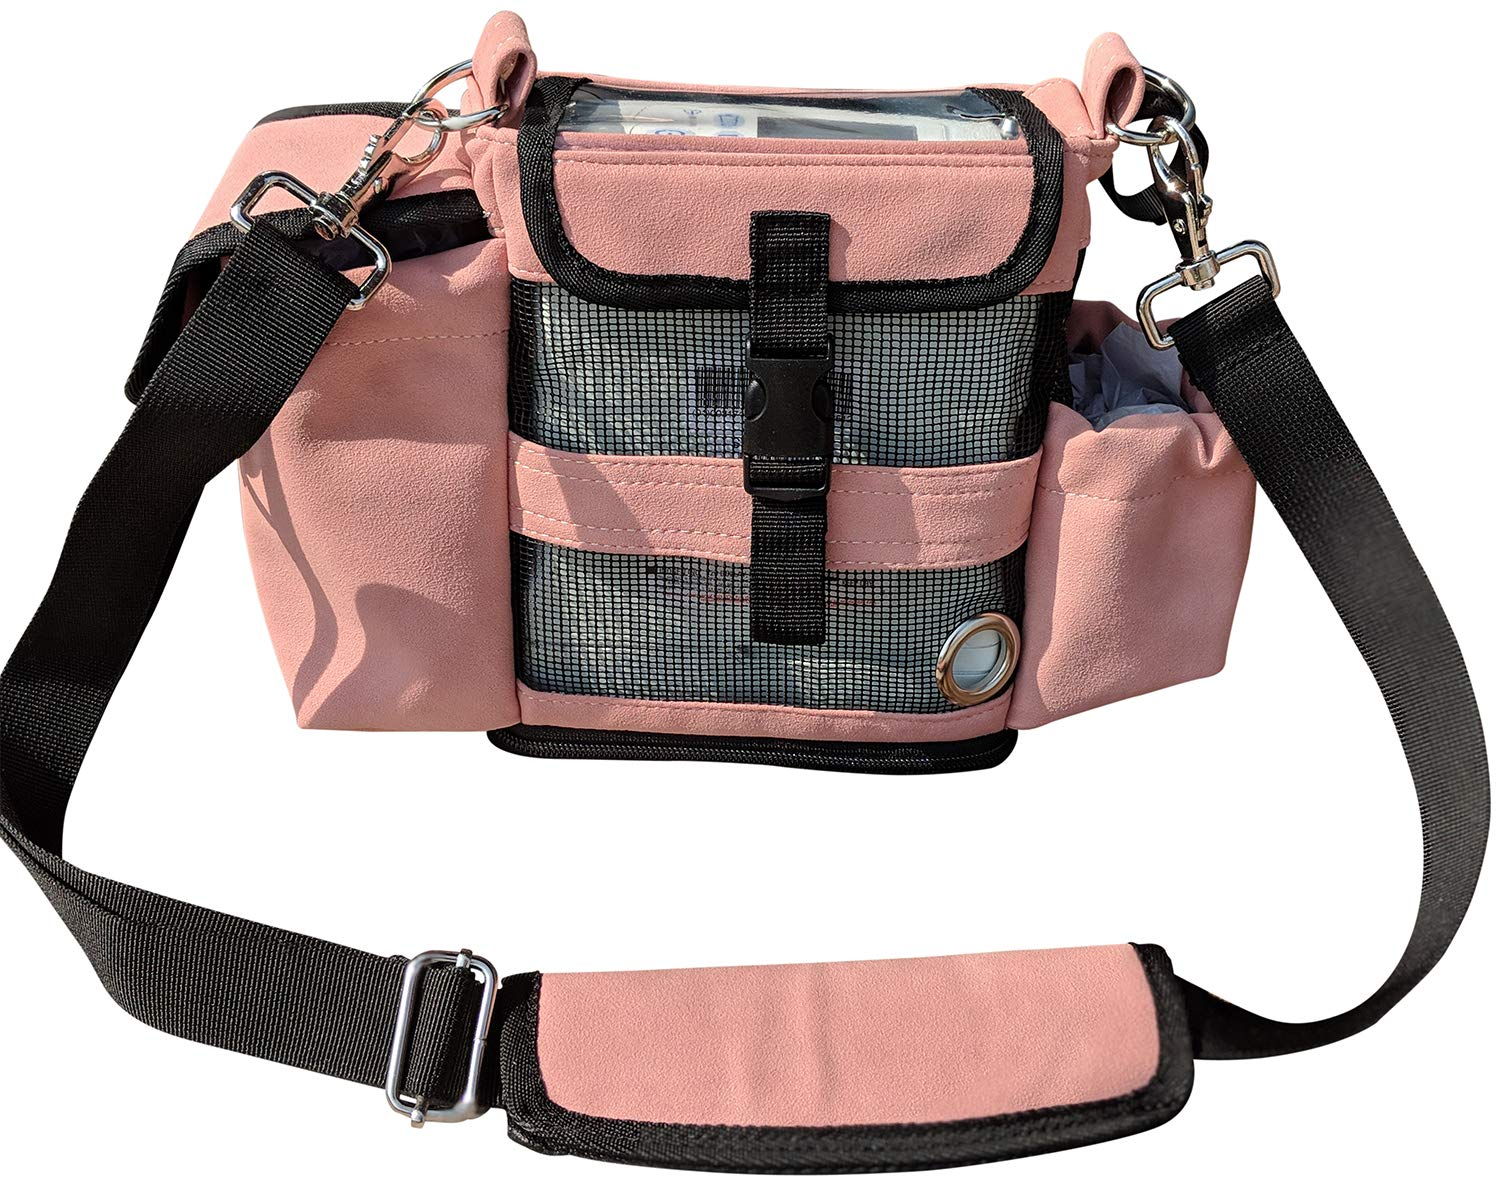 Carry Bag for Inogen one G4 & Oxygo Fit/Fits Extra Batteries, Keys, Wallet & More